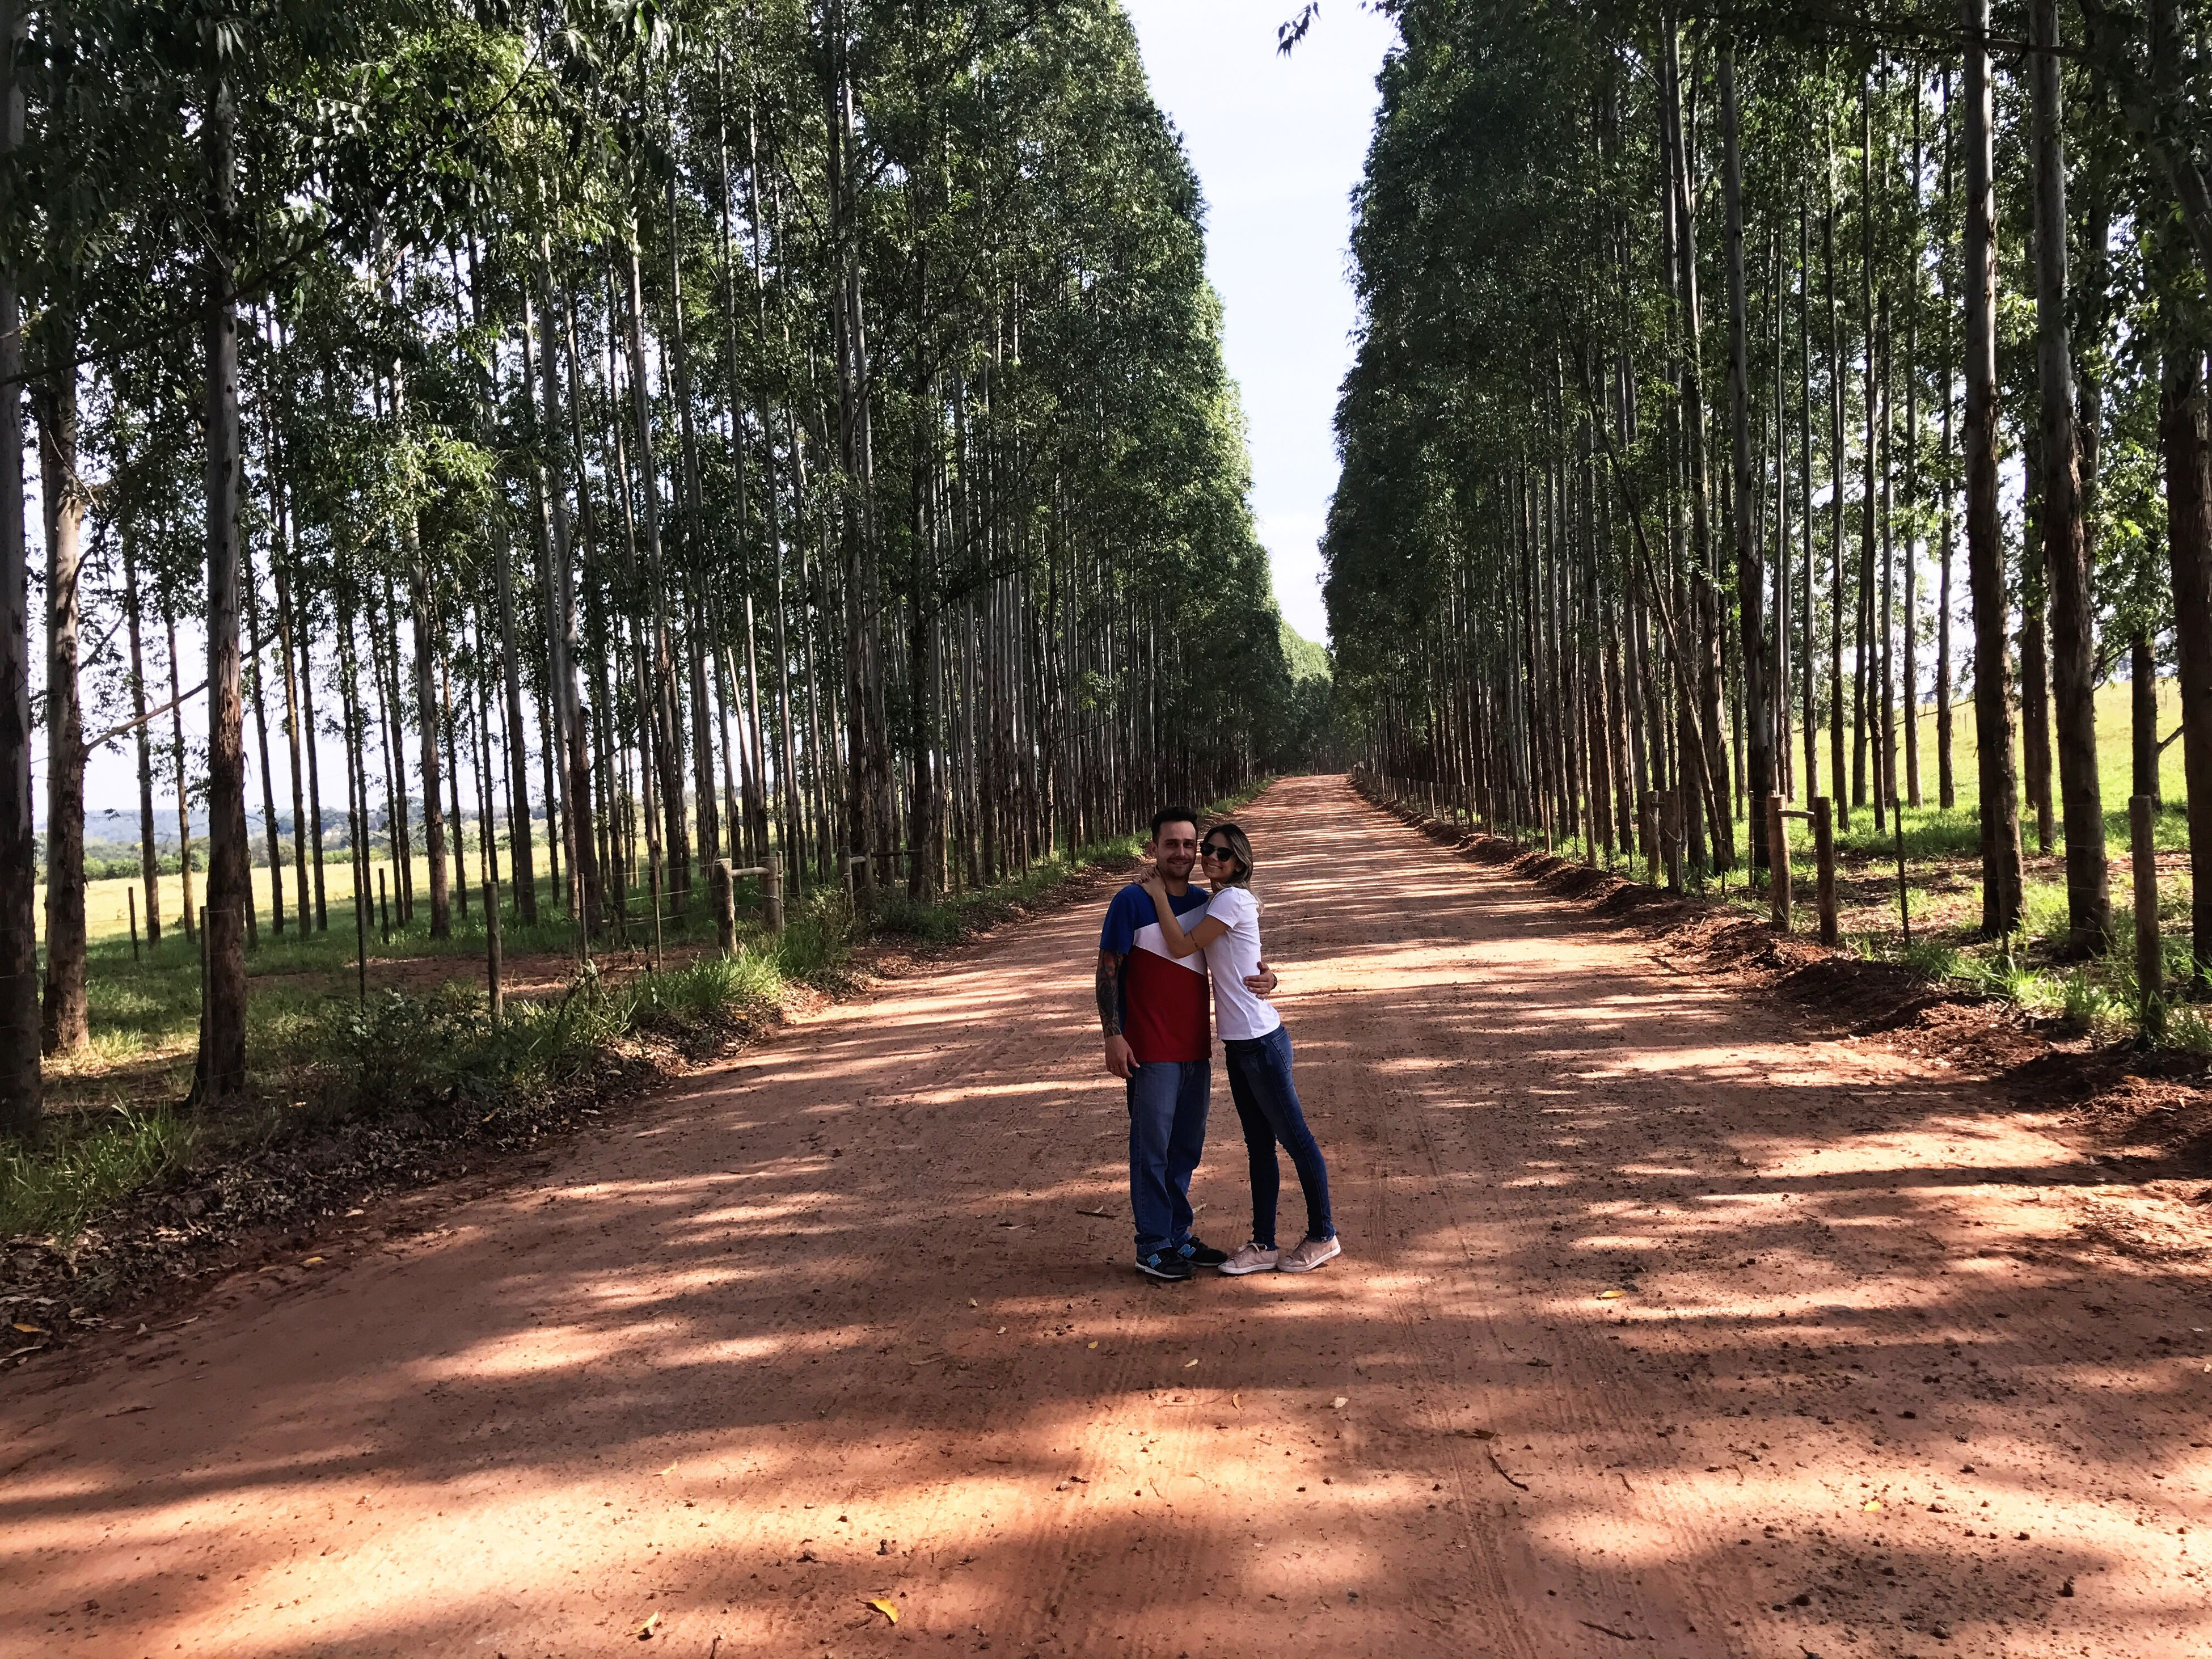 tree, two people, real people, full length, togetherness, casual clothing, walking, day, leisure activity, nature, growth, outdoors, lifestyles, the way forward, boys, bonding, women, men, forest, beauty in nature, young adult, adult, people